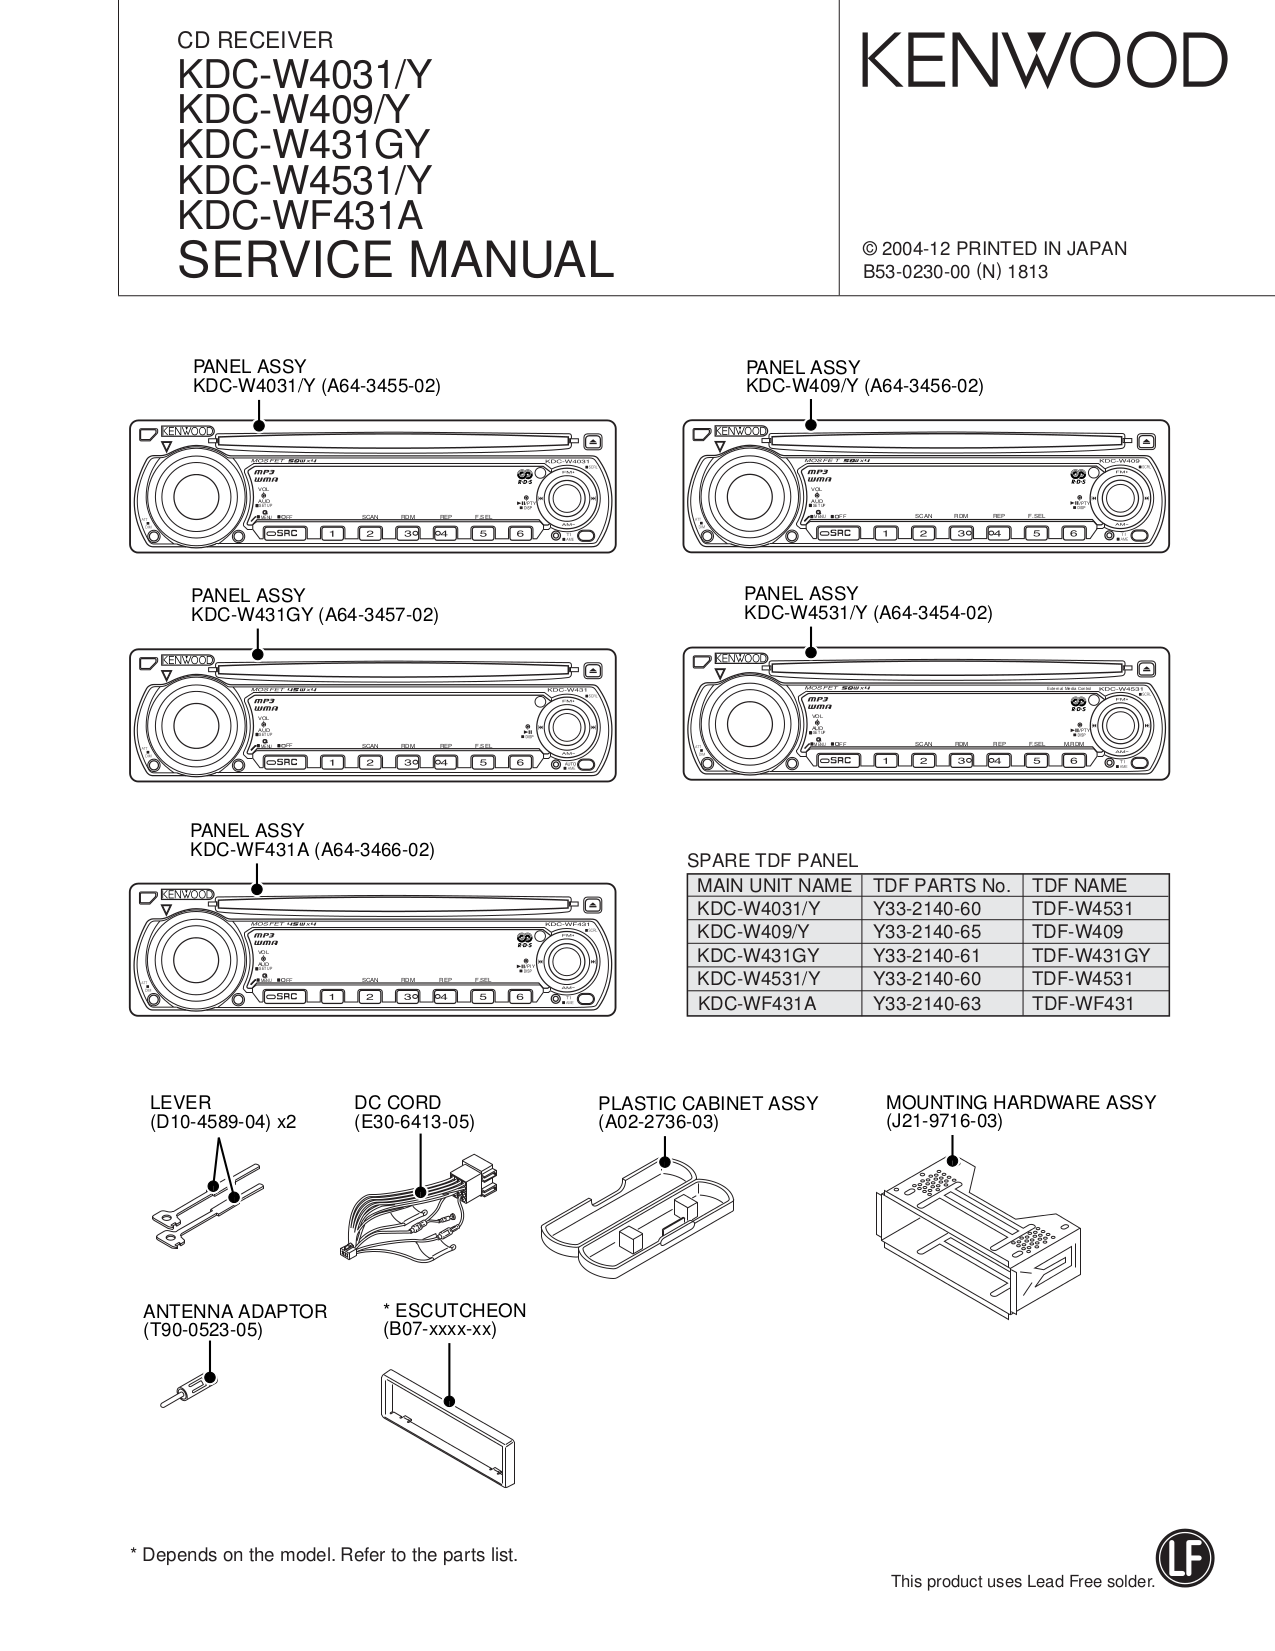 Wiring Diagram For Kenwood Vr 405 : Pdf manual for kenwood car receiver kdc